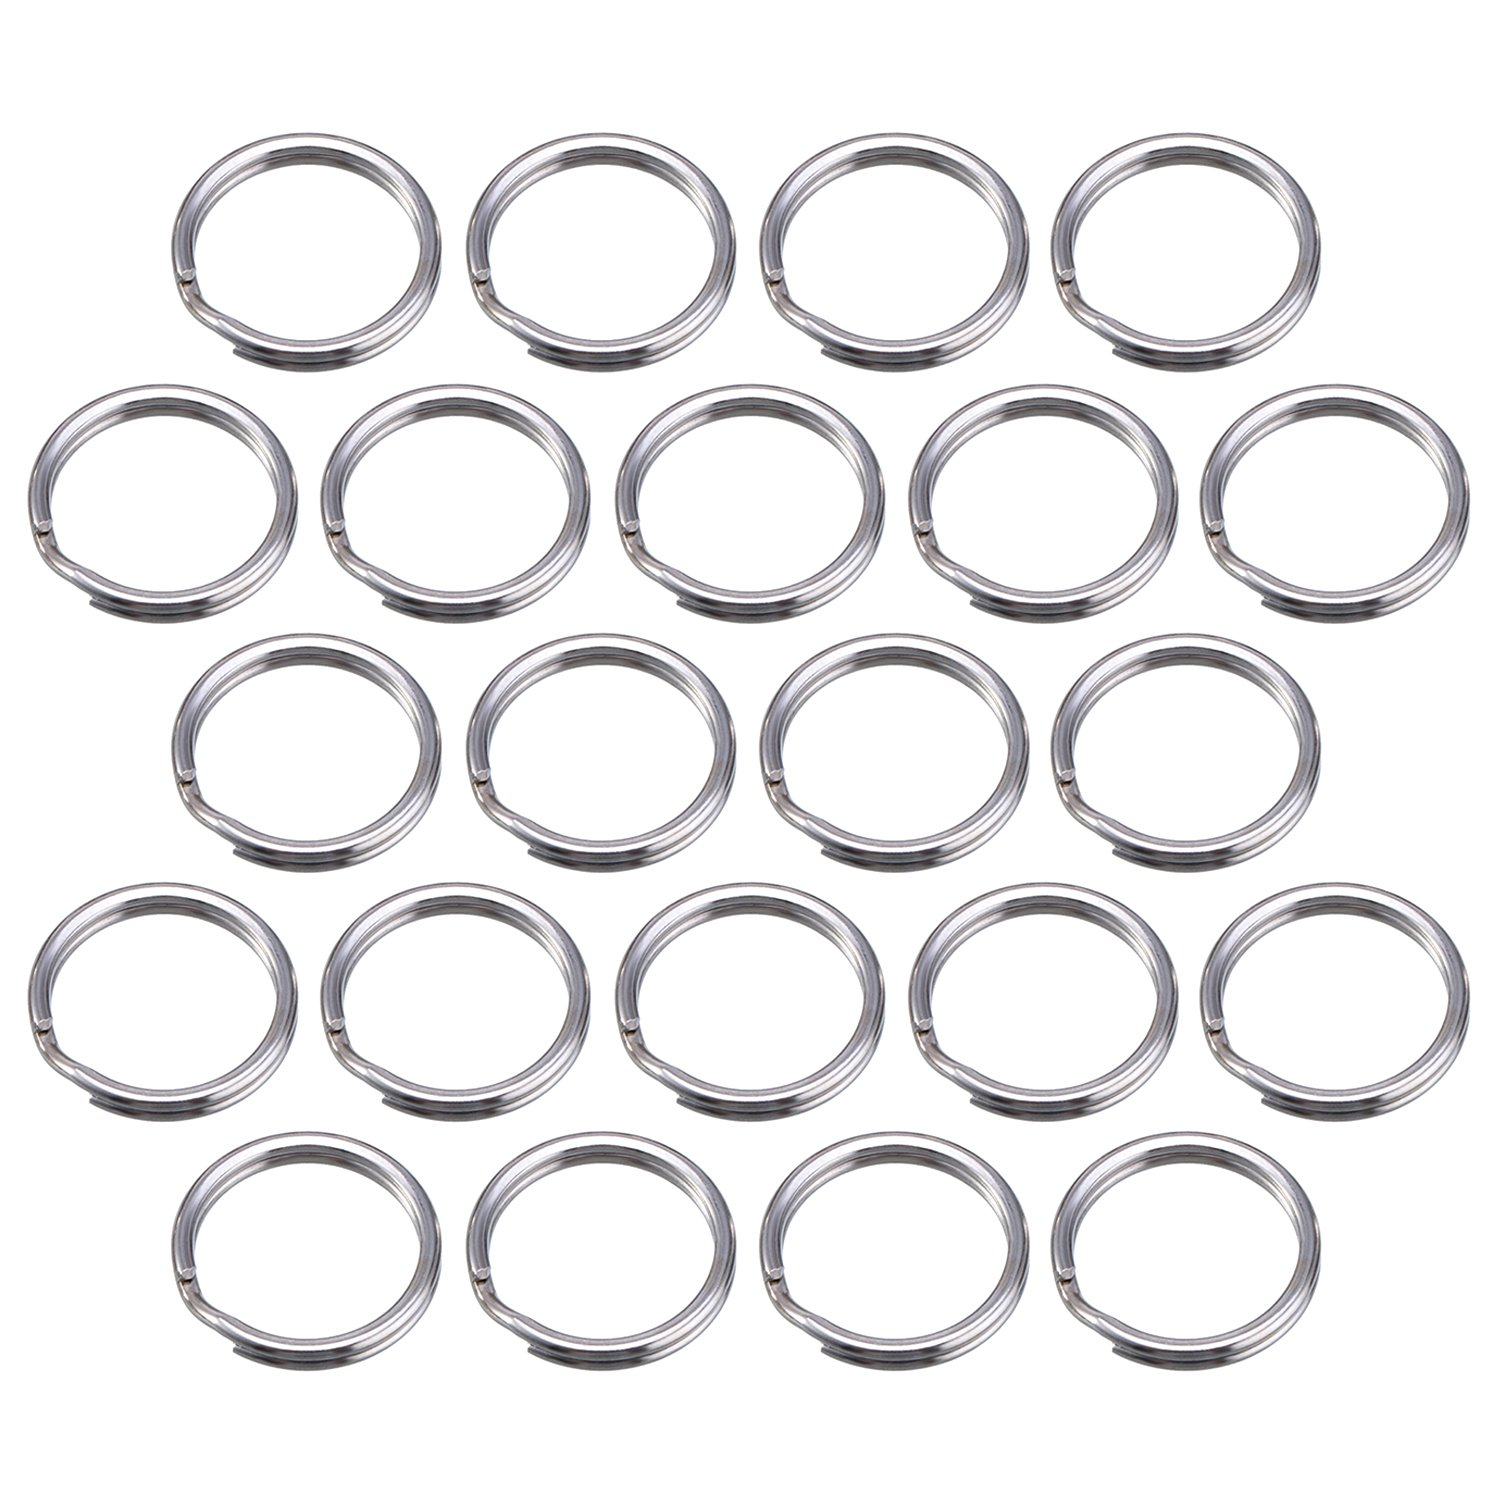 100 Pack Small Key Ring 15 mm Round Metal Split Rings for Home Keys Organization and Craft Making, Silver Bememo